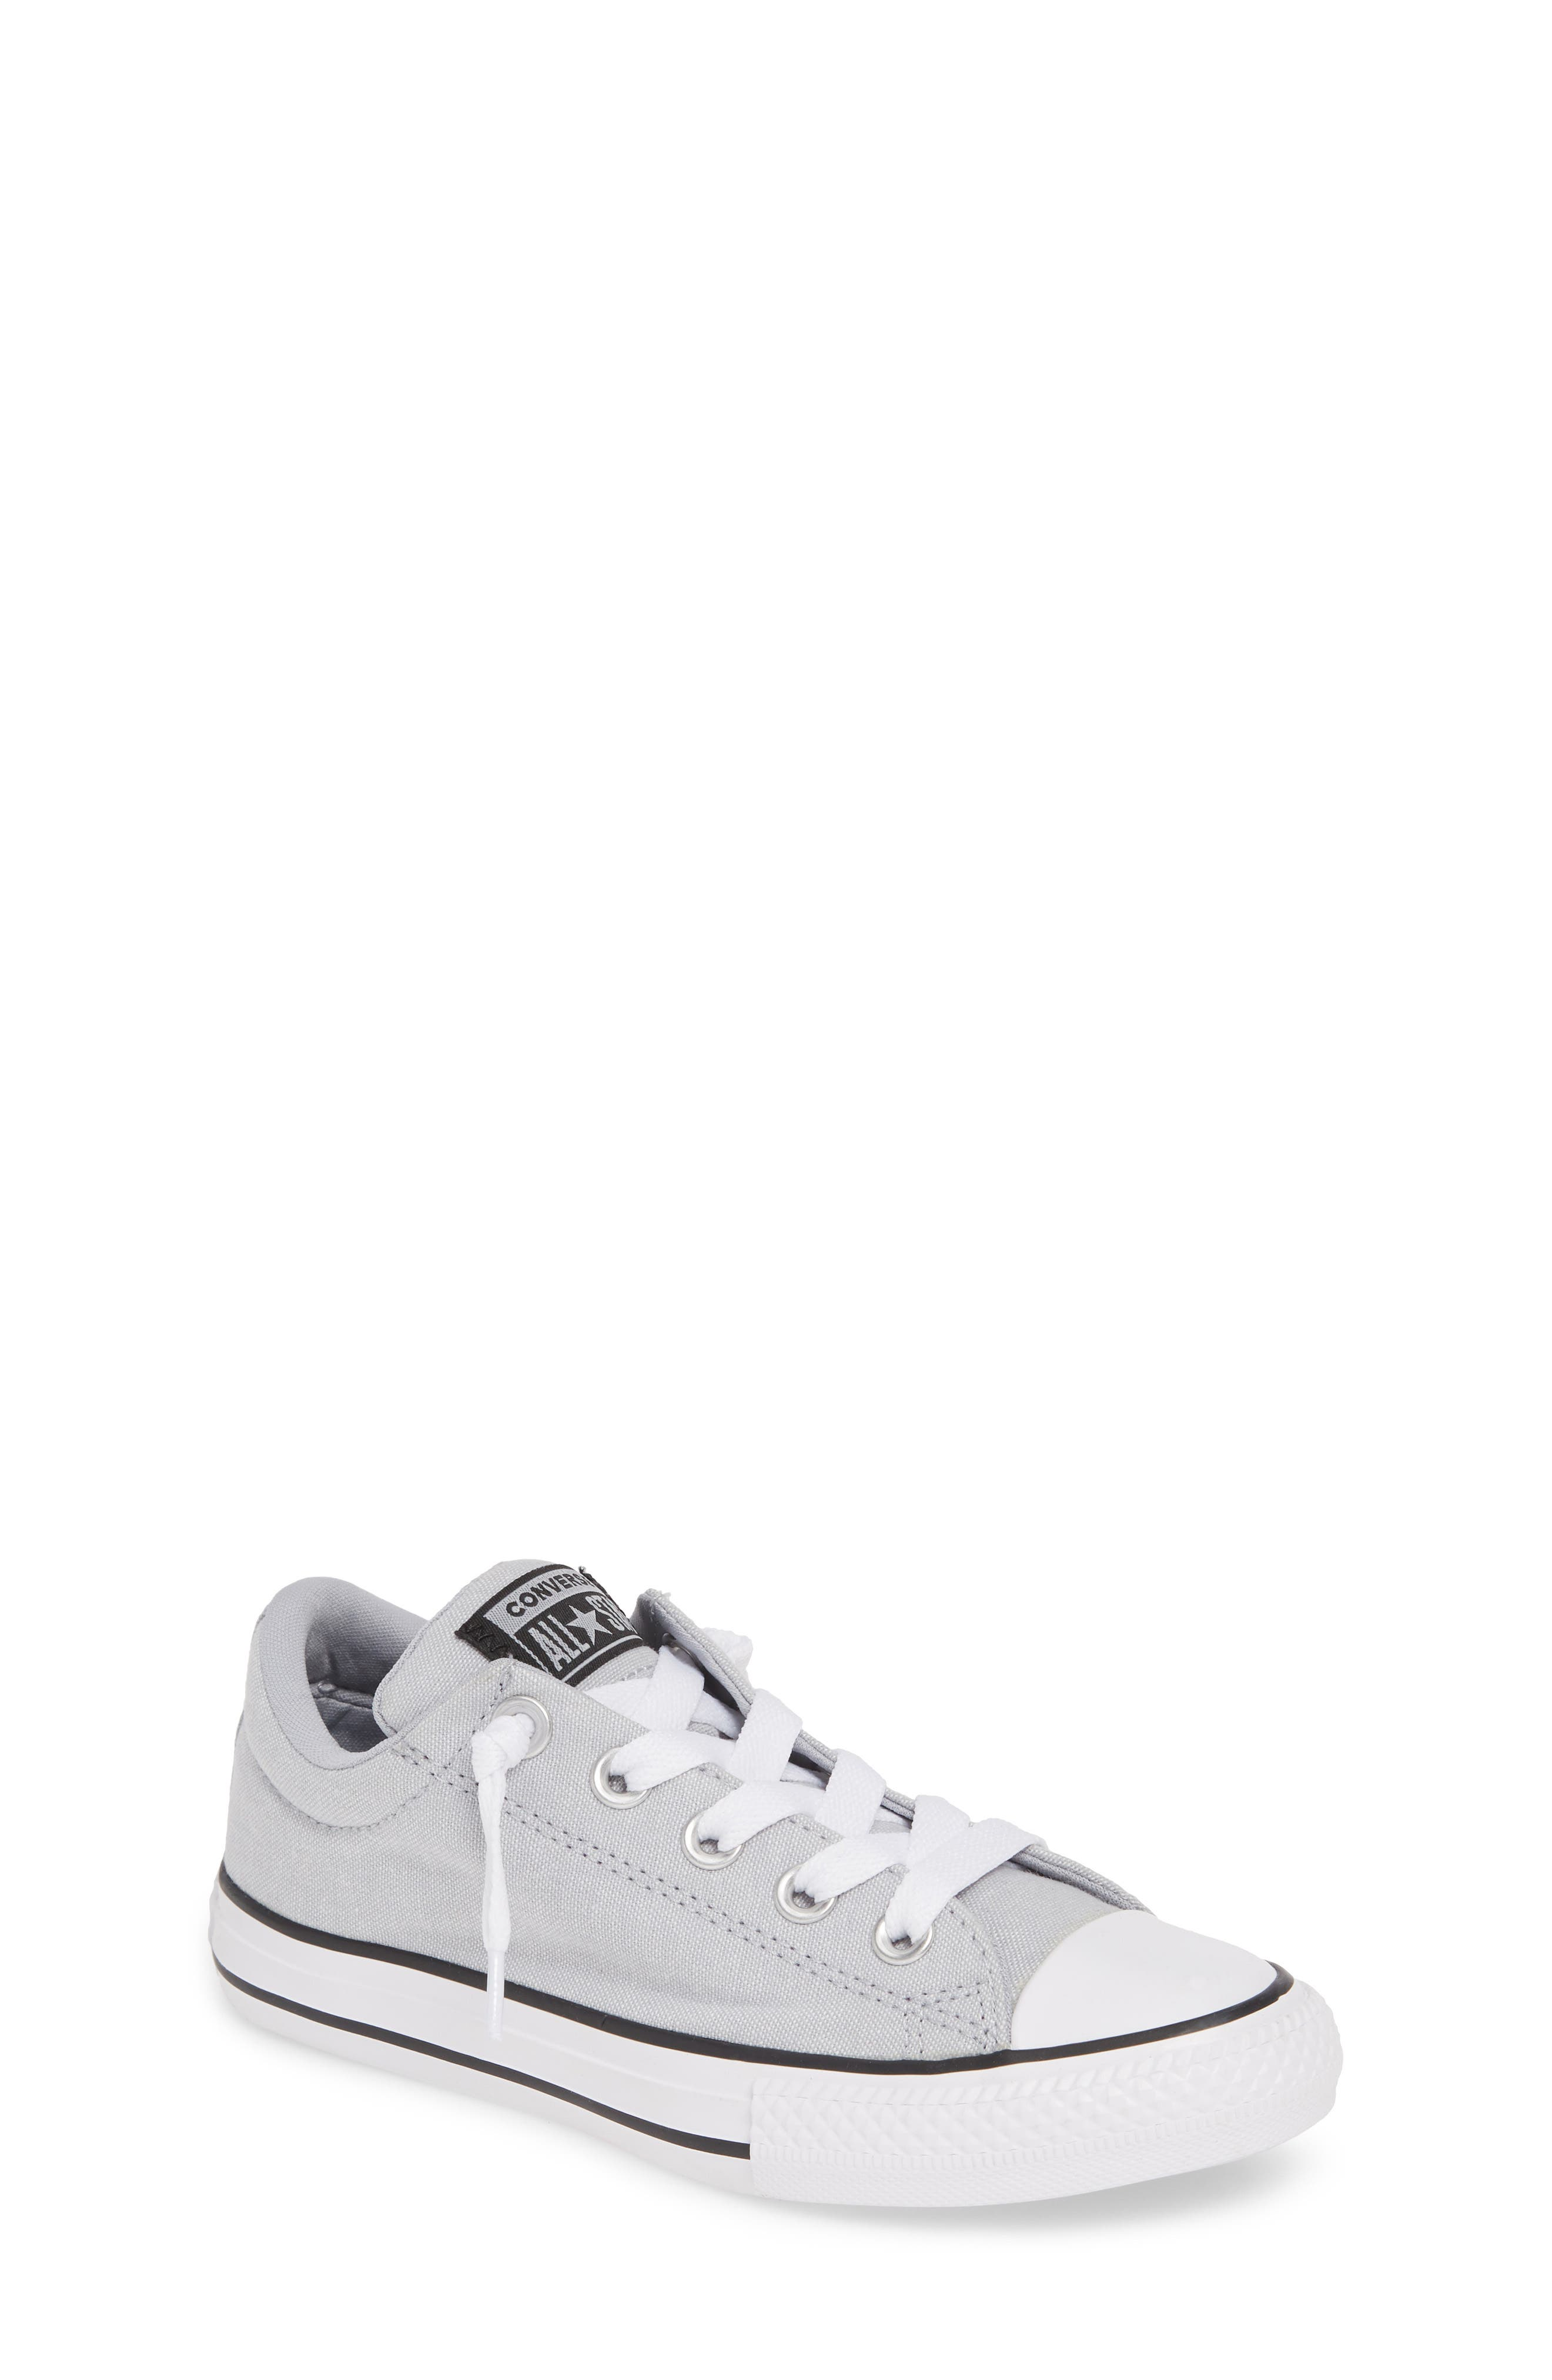 toddler converse sneakers sale